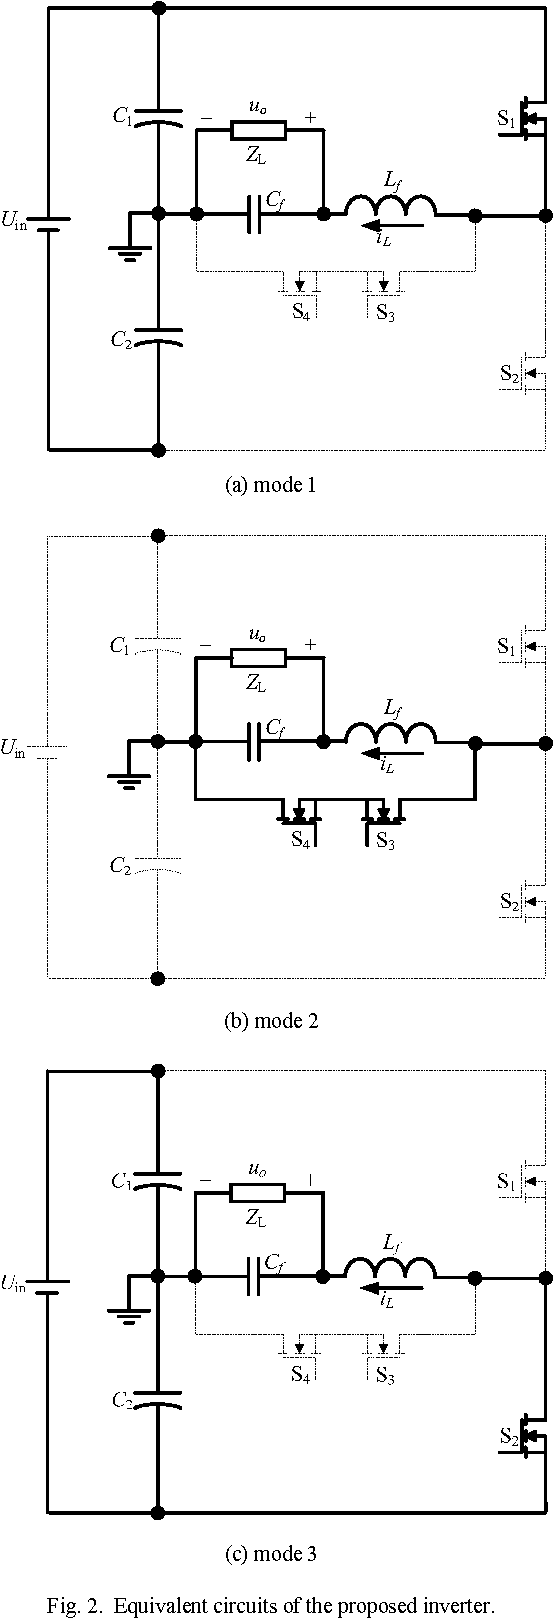 Half Bridge Type Inverter With Hysteresis Current Control And Is Unipolar Pwm Possible A Electronics Modulation Semantic Scholar